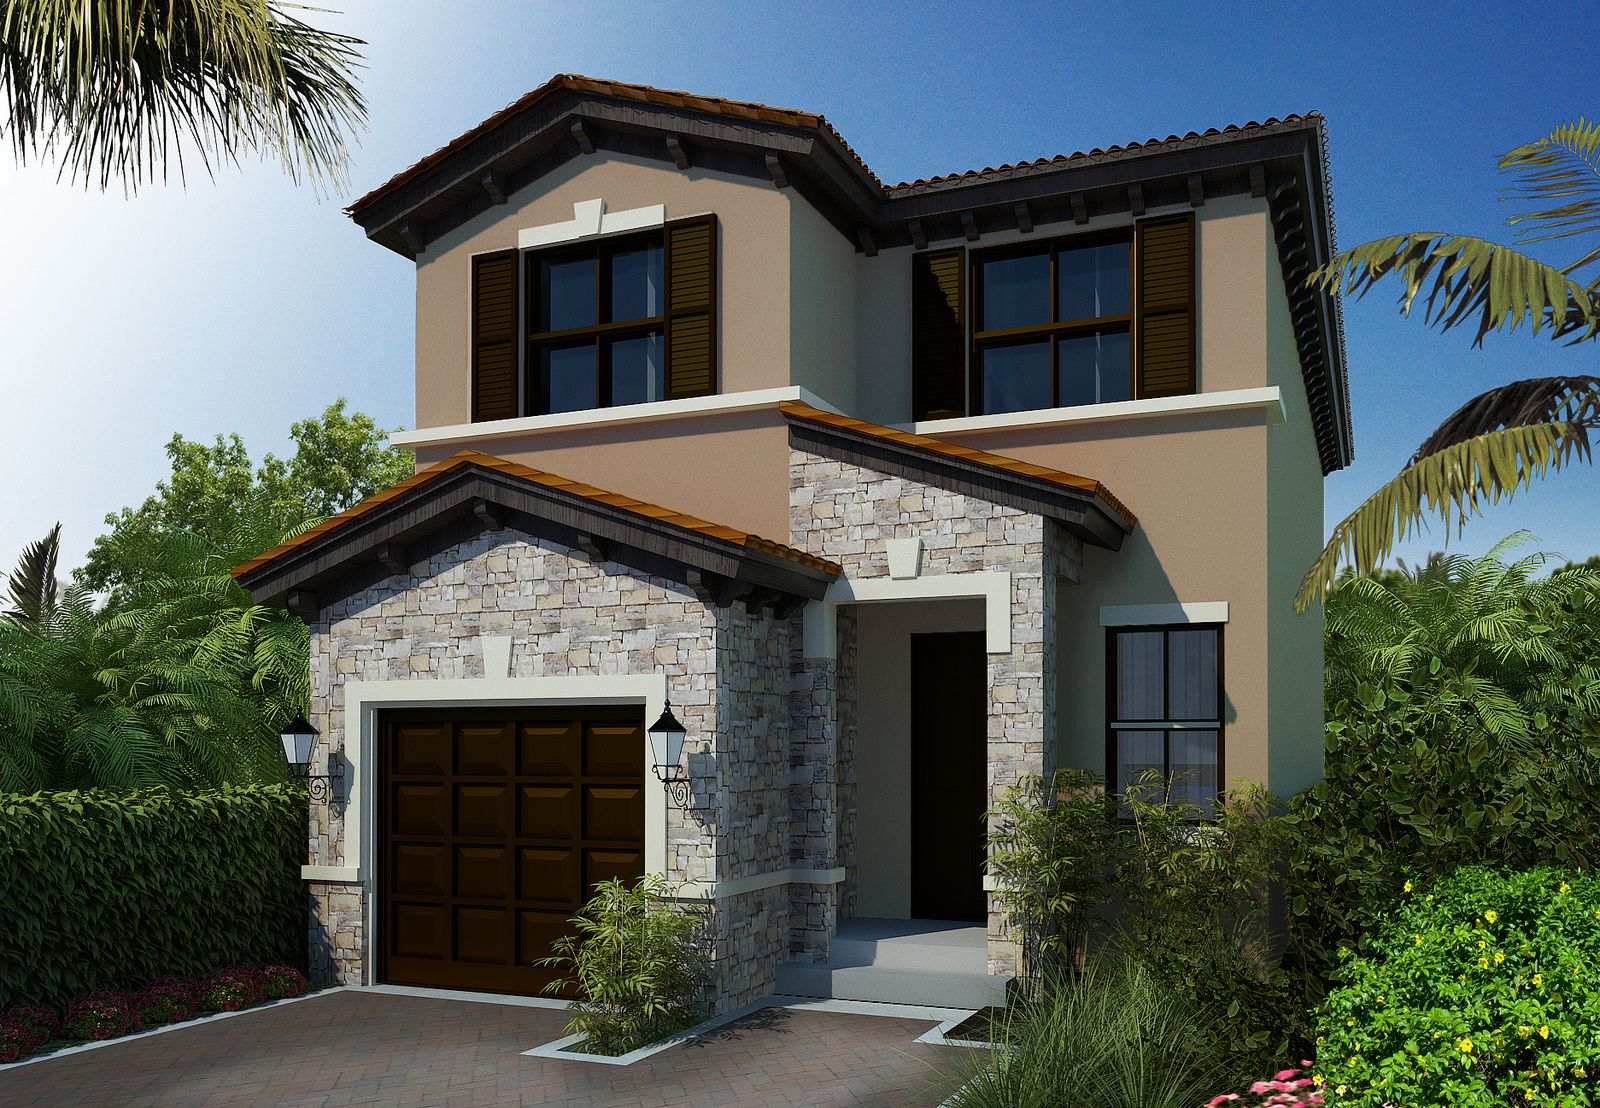 Fort lauderdale homes for sale homes for sale in fort for Houses for sale